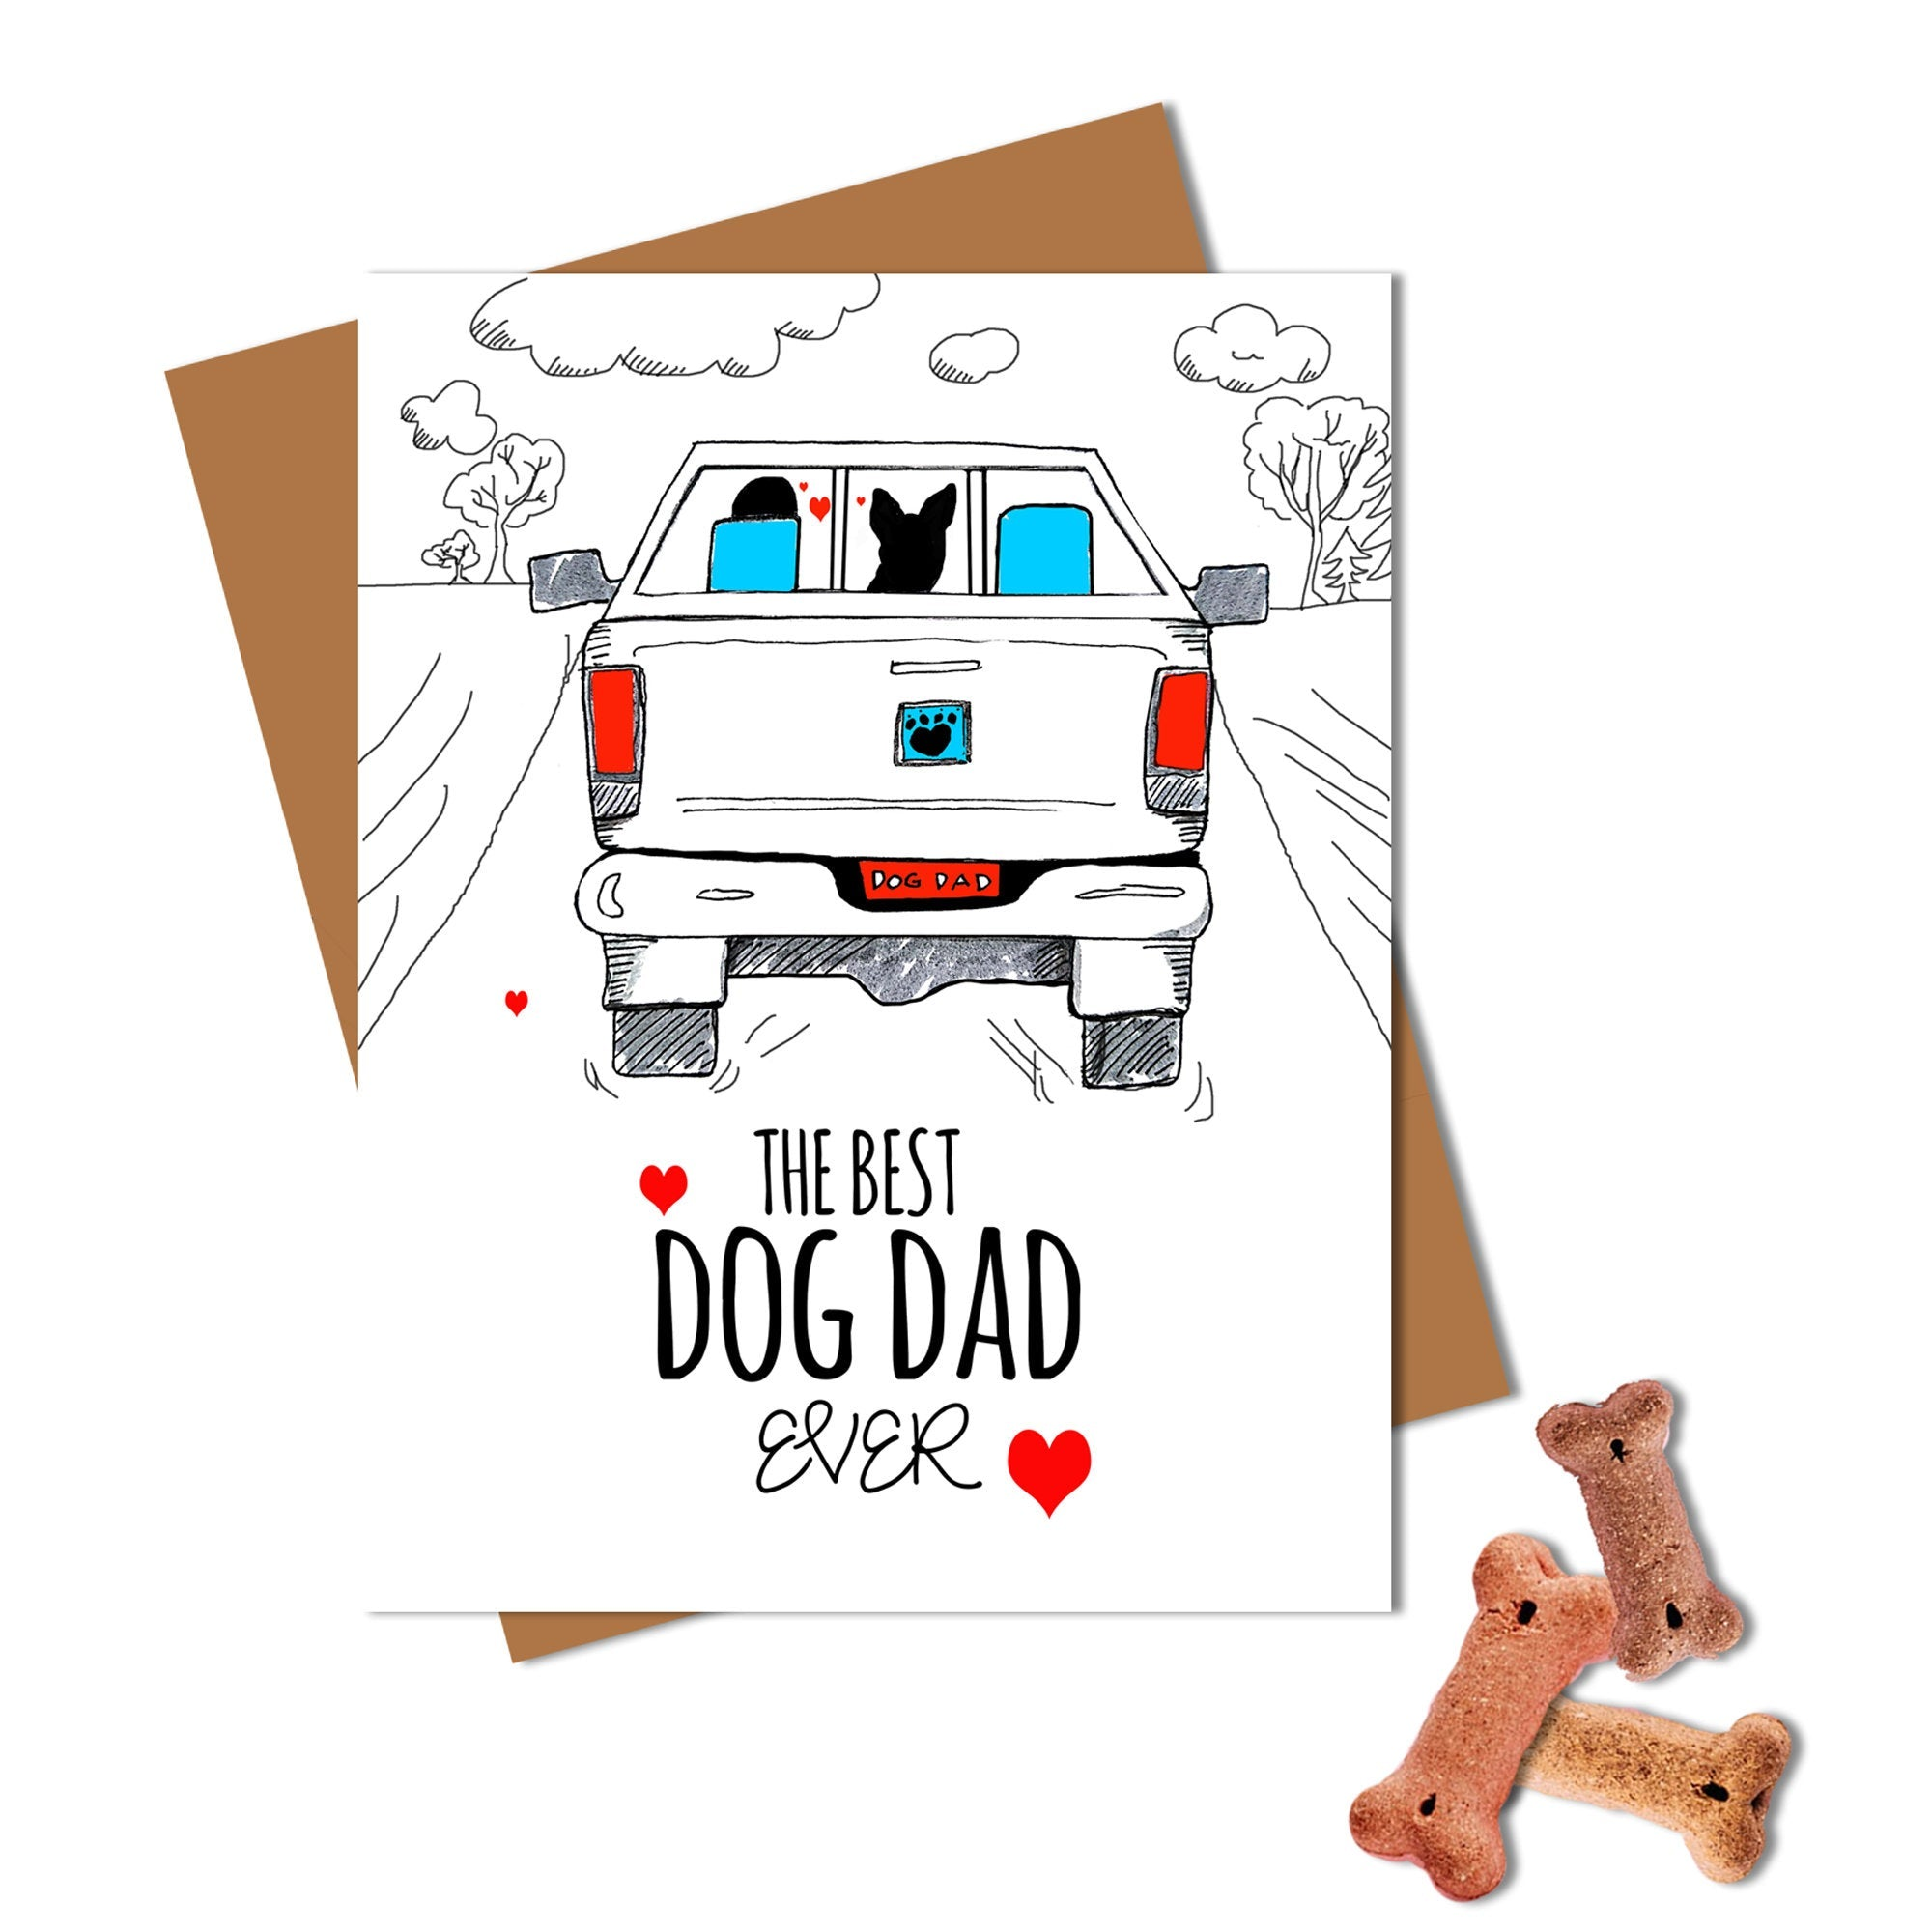 Best Dog Dad Ever Card - Husky Card